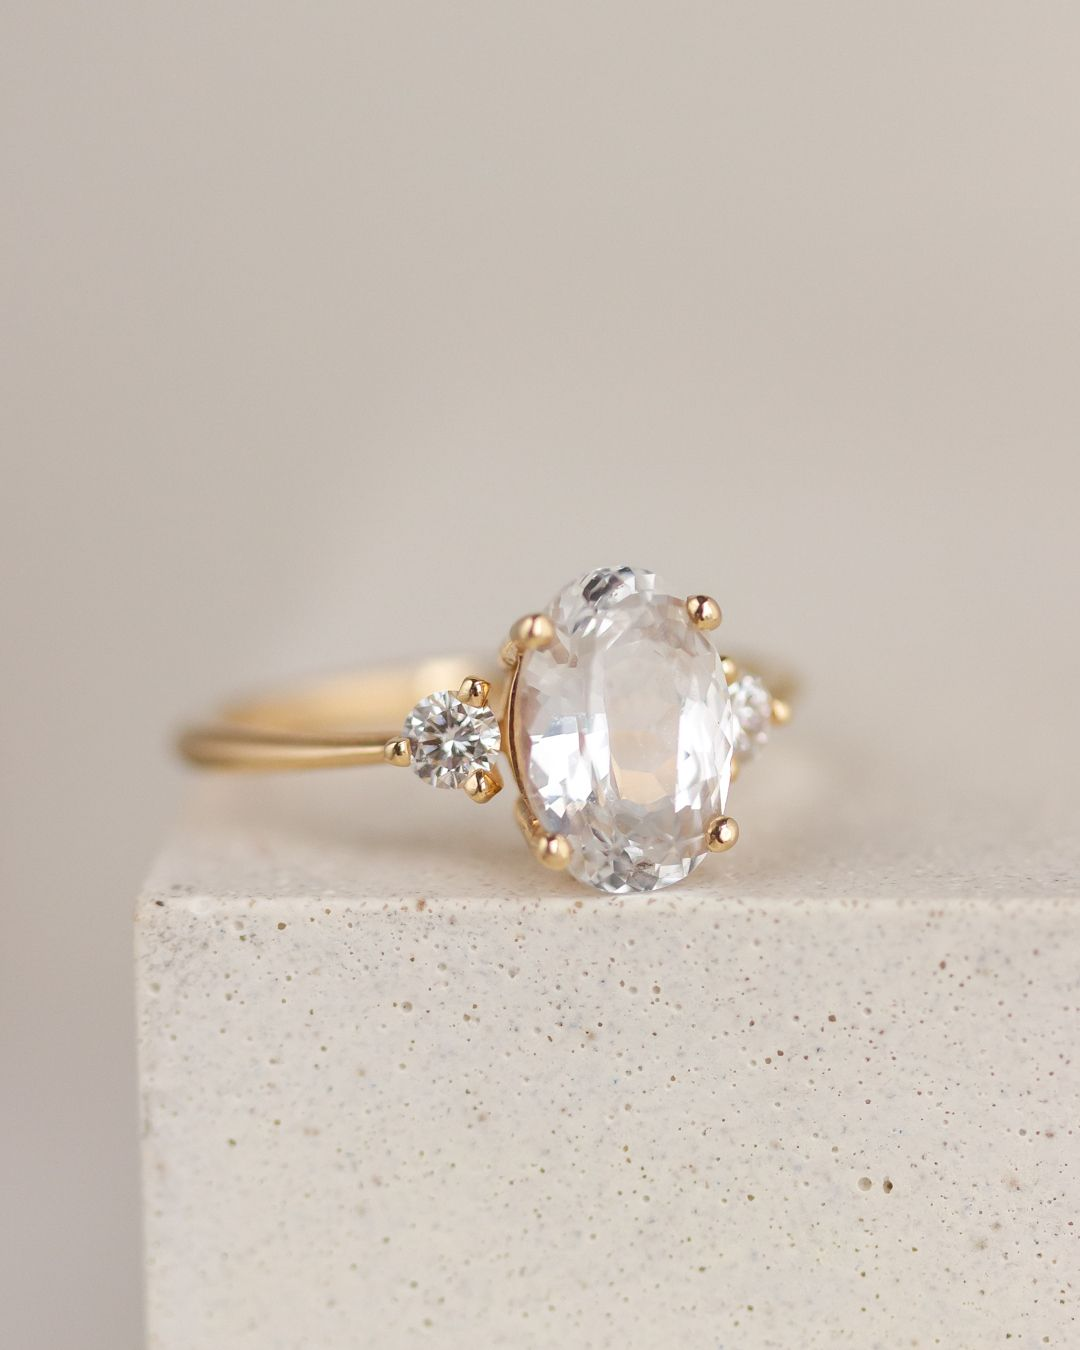 Pin By Manal On Aesthetic In 2020 Future Engagement Rings Modern Engagement Rings Yellow Gold Engagement Rings